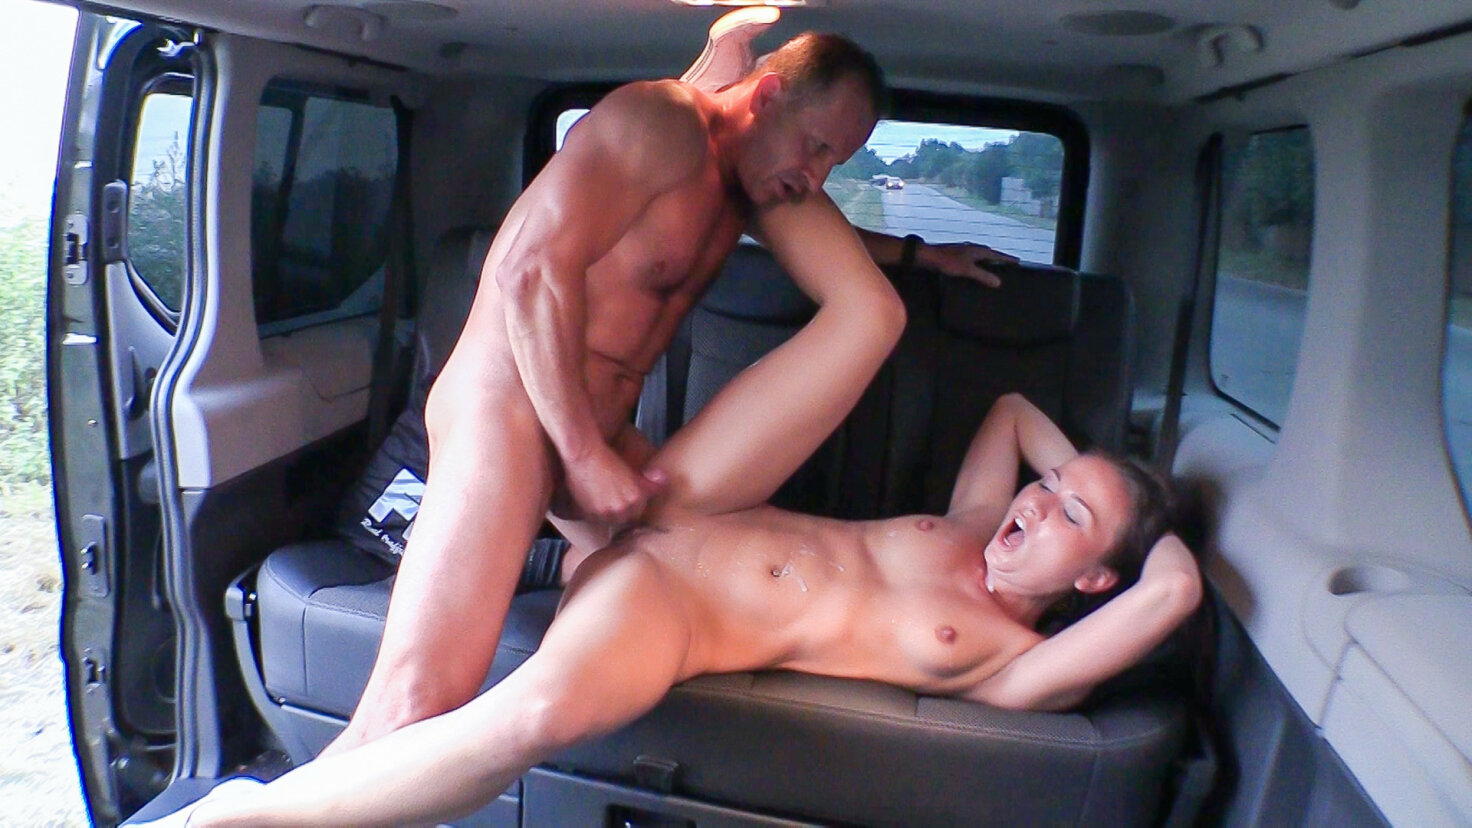 Beautiful Czech babe gets banged and cum covered in hot car sex